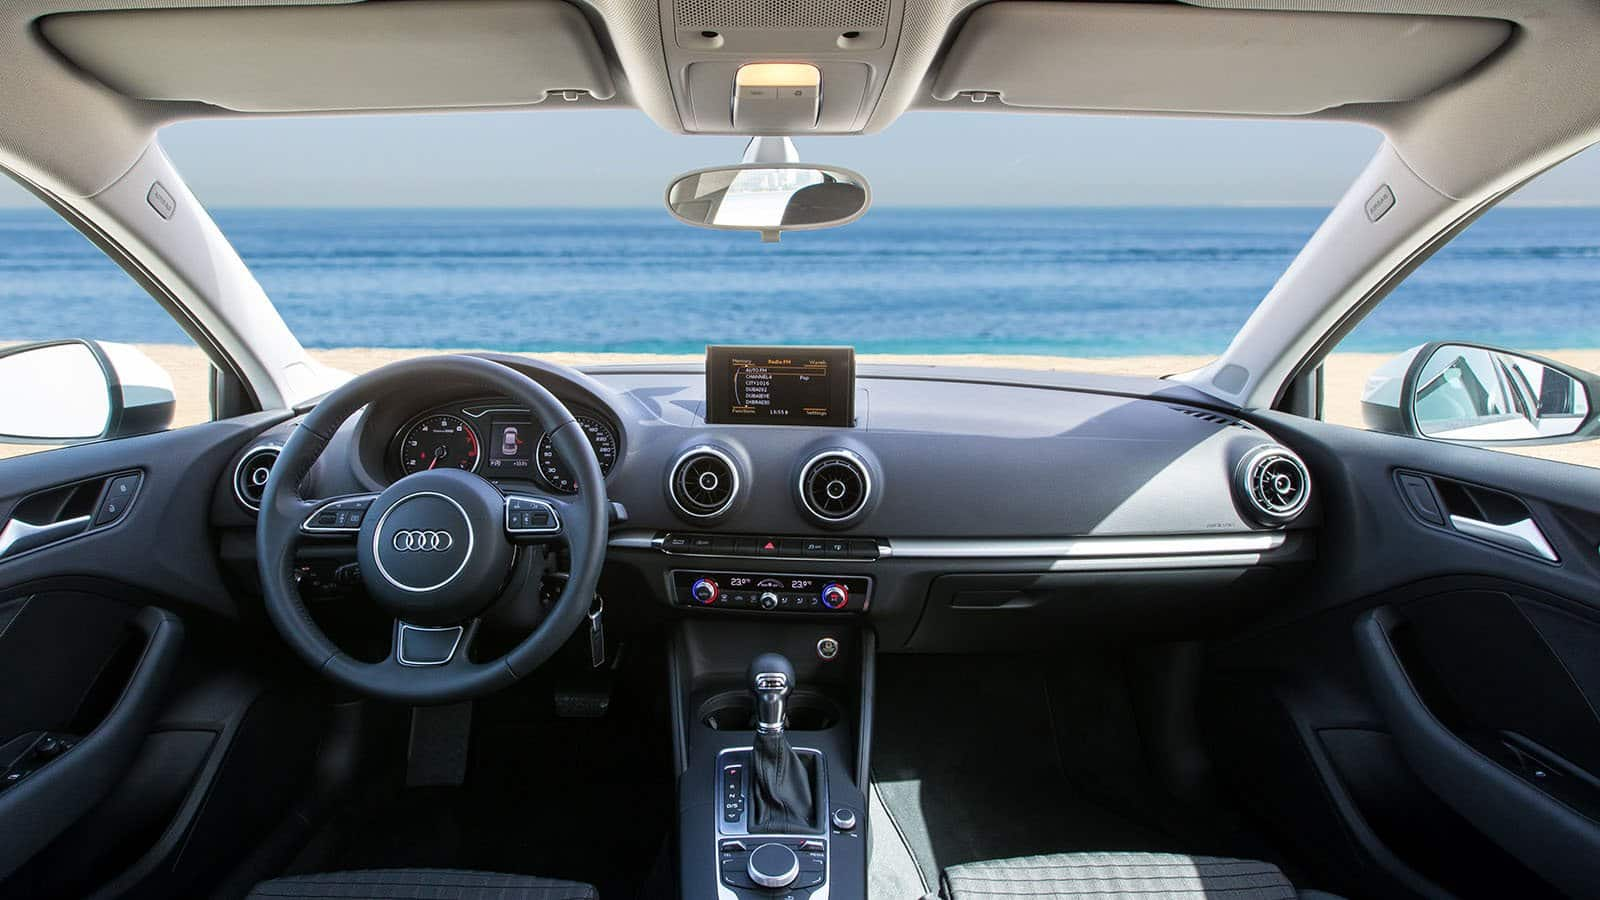 Audi A3 Dubai Car Rental